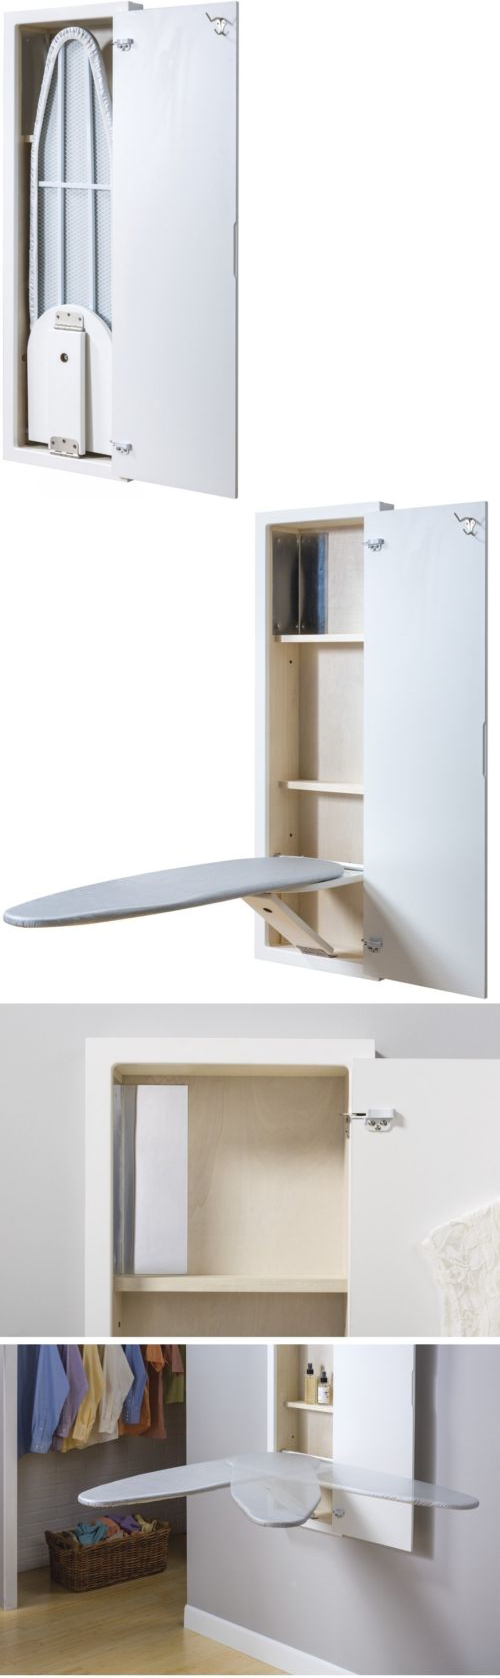 NuTone EZ Install Wall Mount Built In Ironing Center Cabinet w Fold Down Board